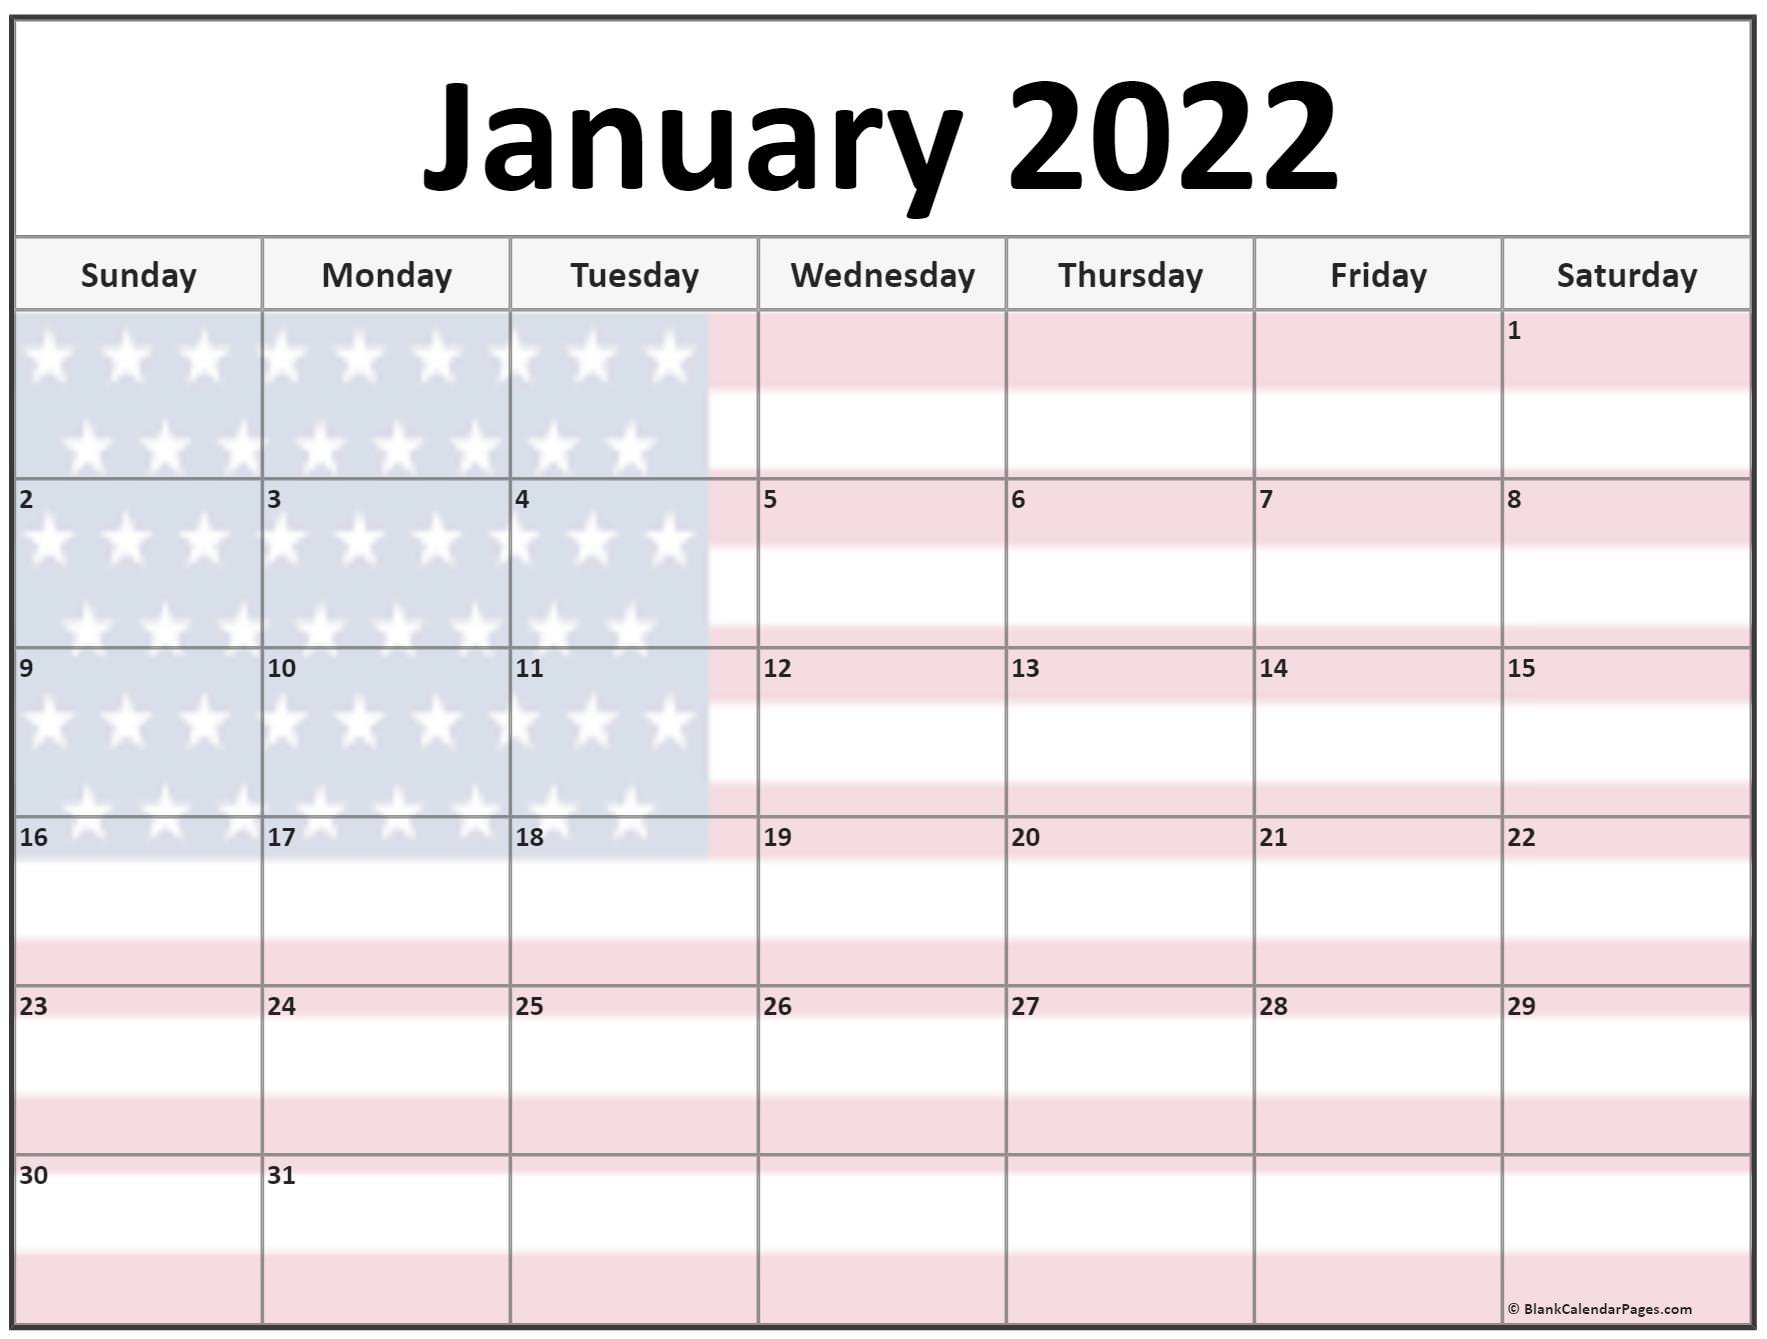 Collection Of January 2022 Photo Calendars With Image Filters. With Regard To Printable Calendars January 2022 To December 2022